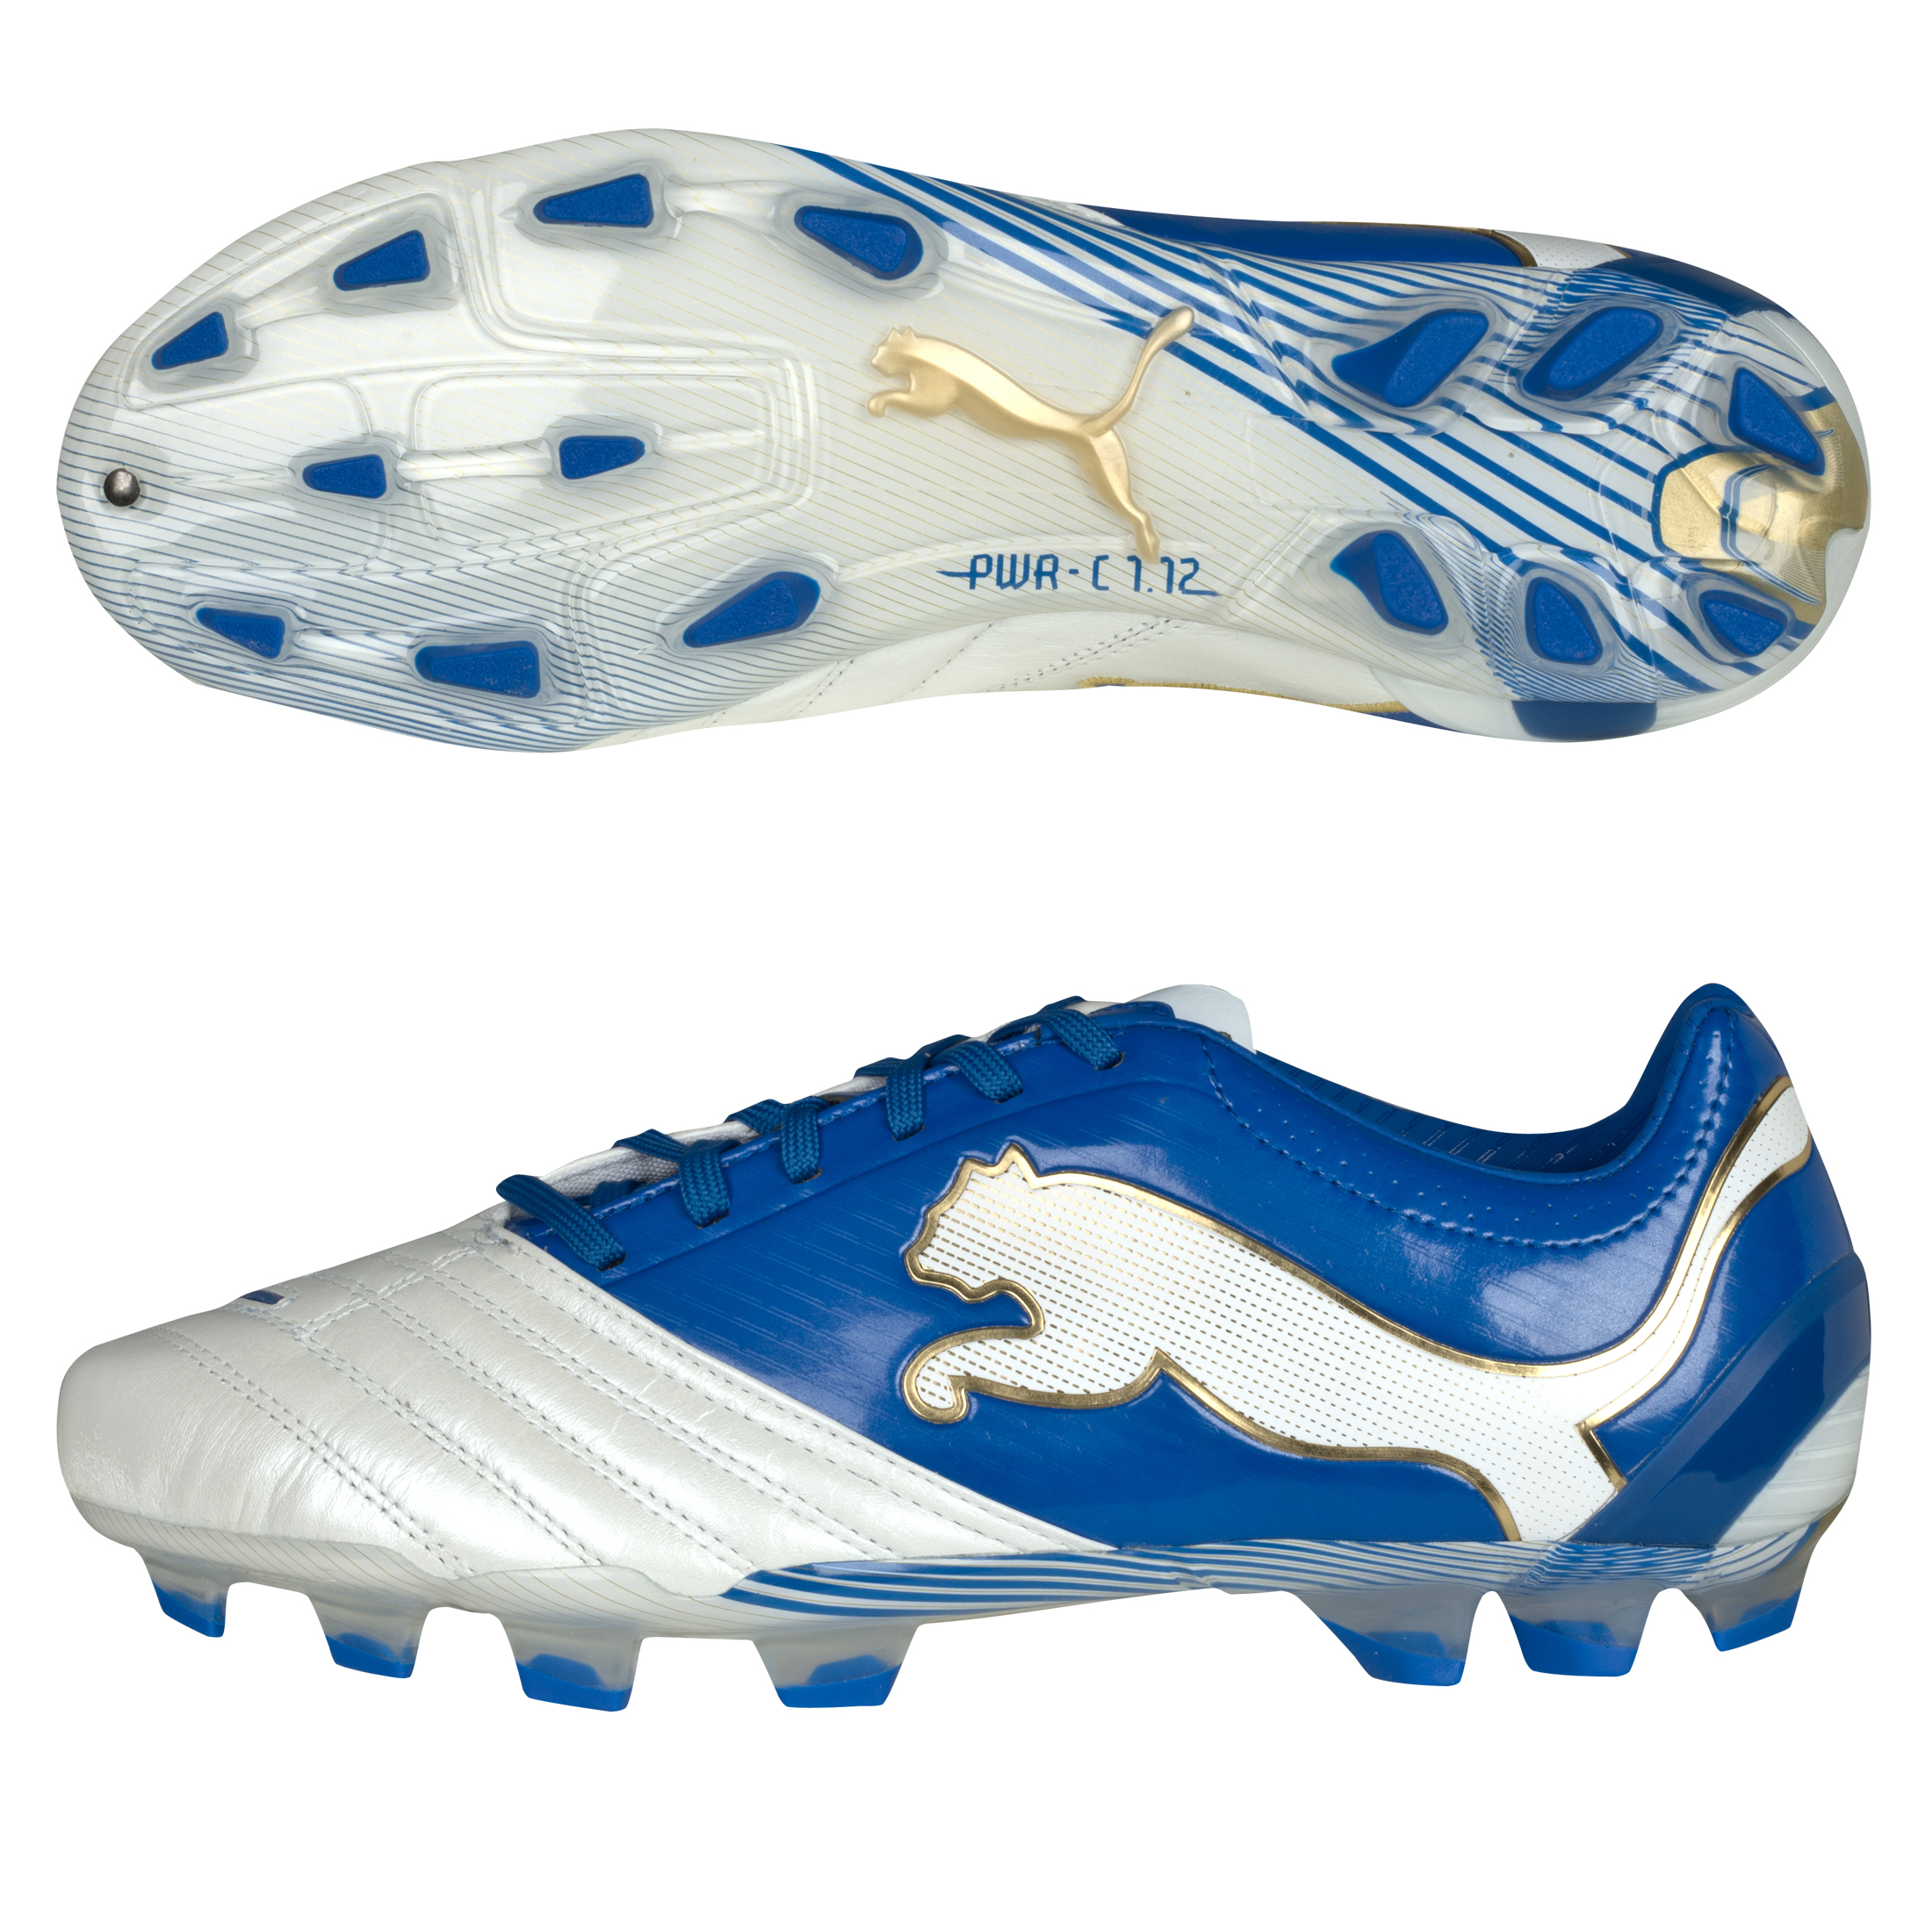 PowerCat 1.12 FG White/Royal/Team Gold